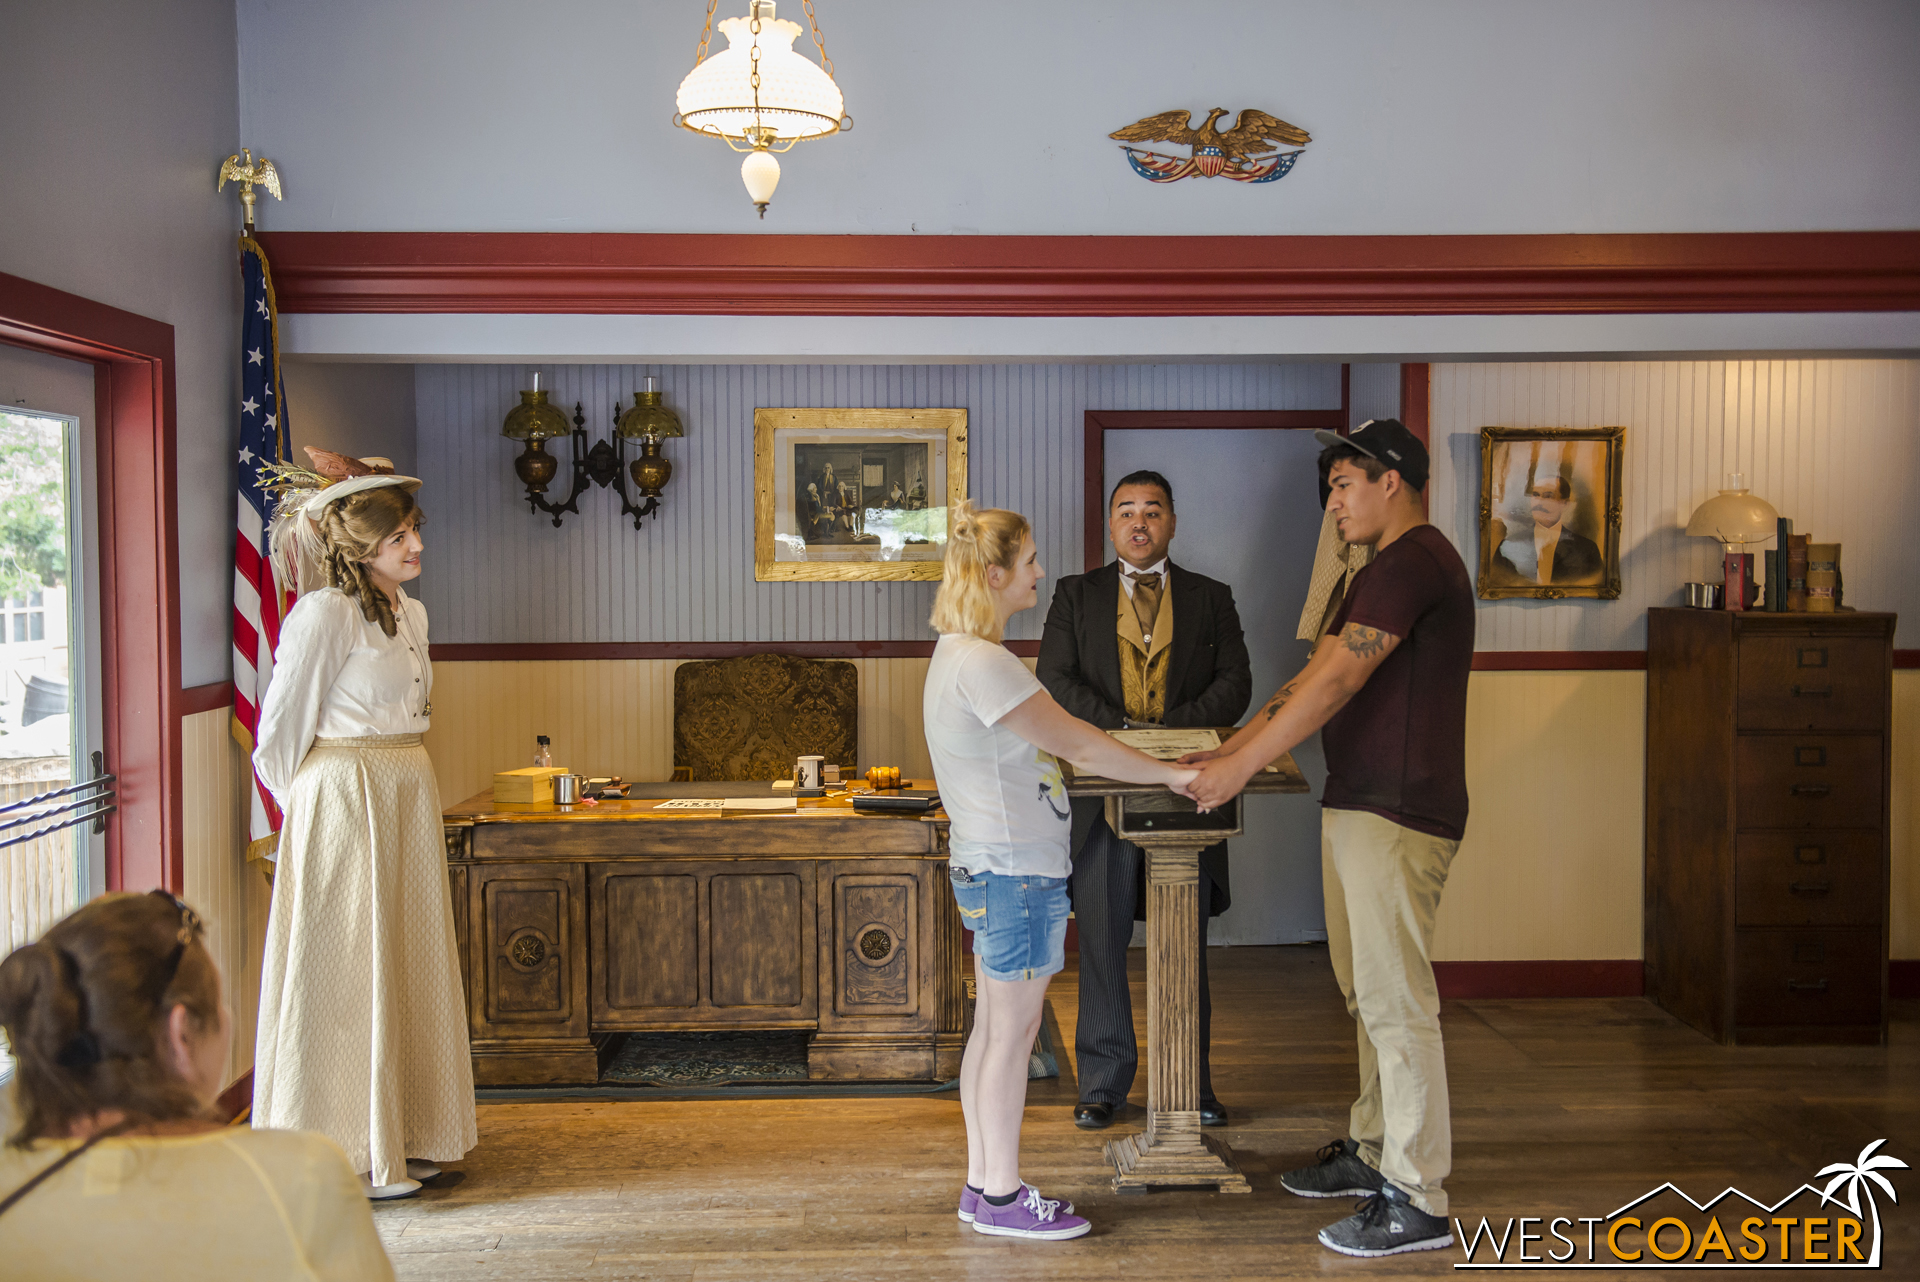 In the middle of the day, two guests flat out had a little wedding ceremony, officiated by Mayor Horton Parnell.